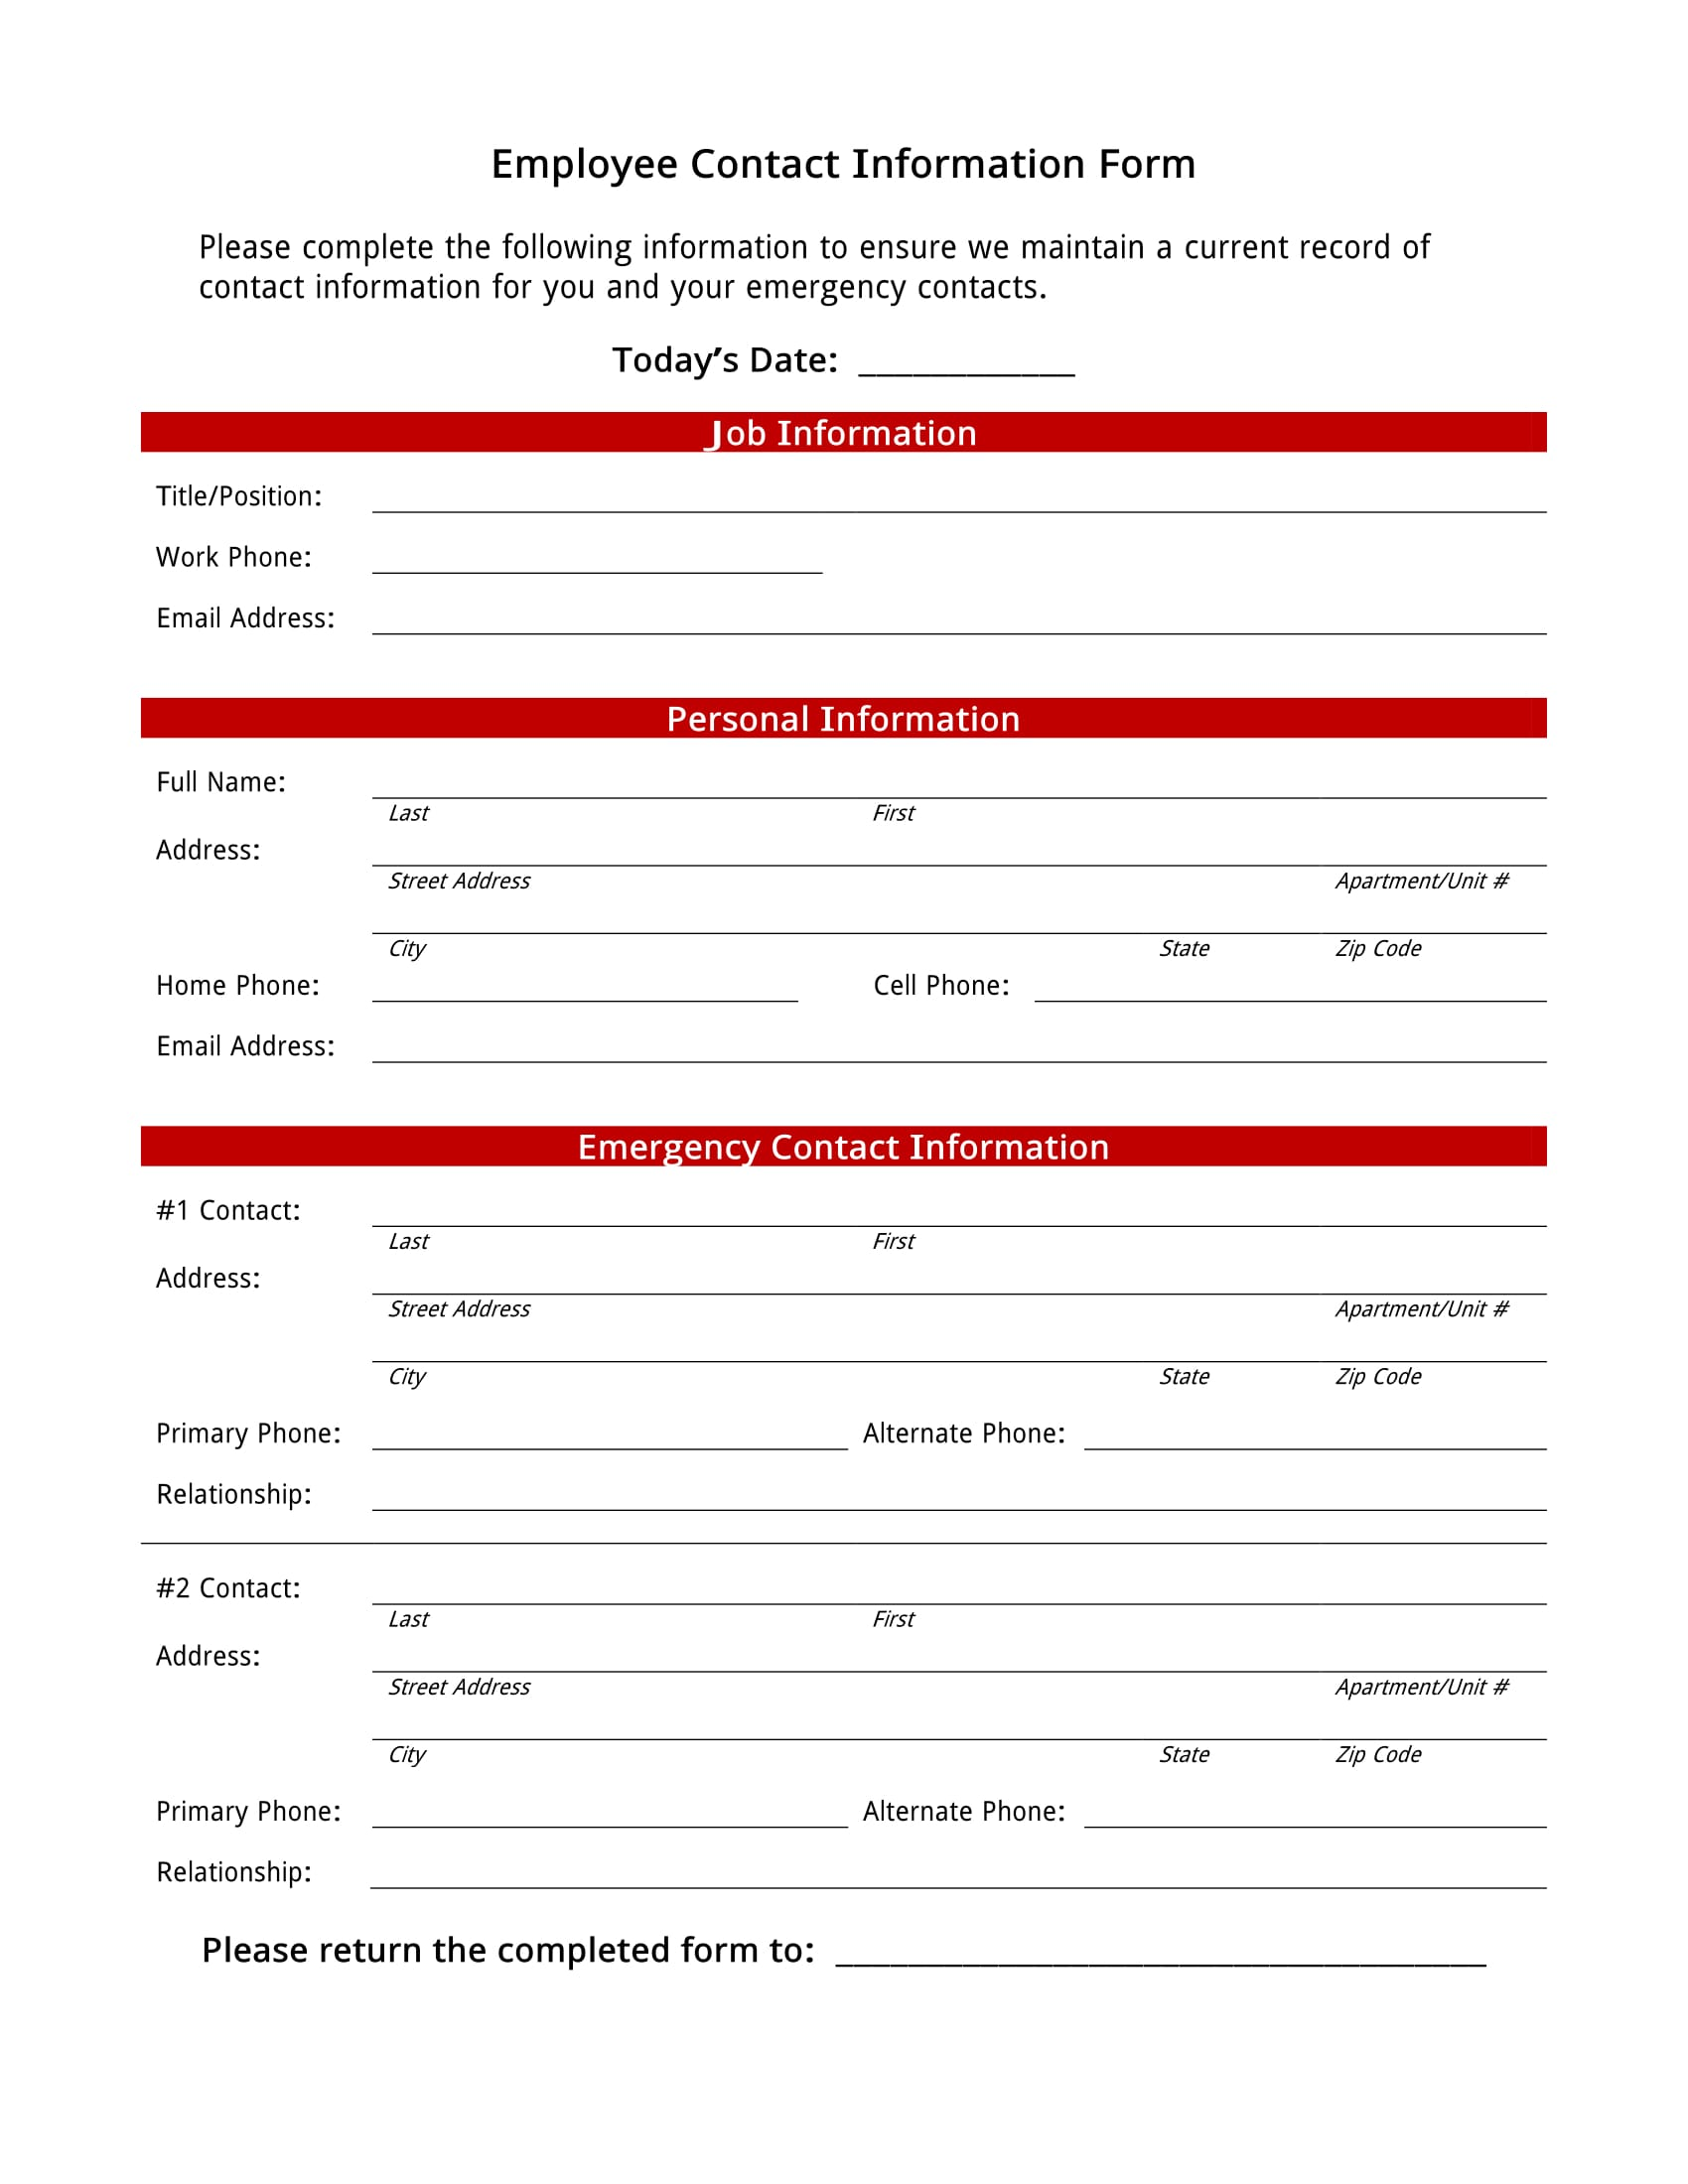 employee contact information form 1